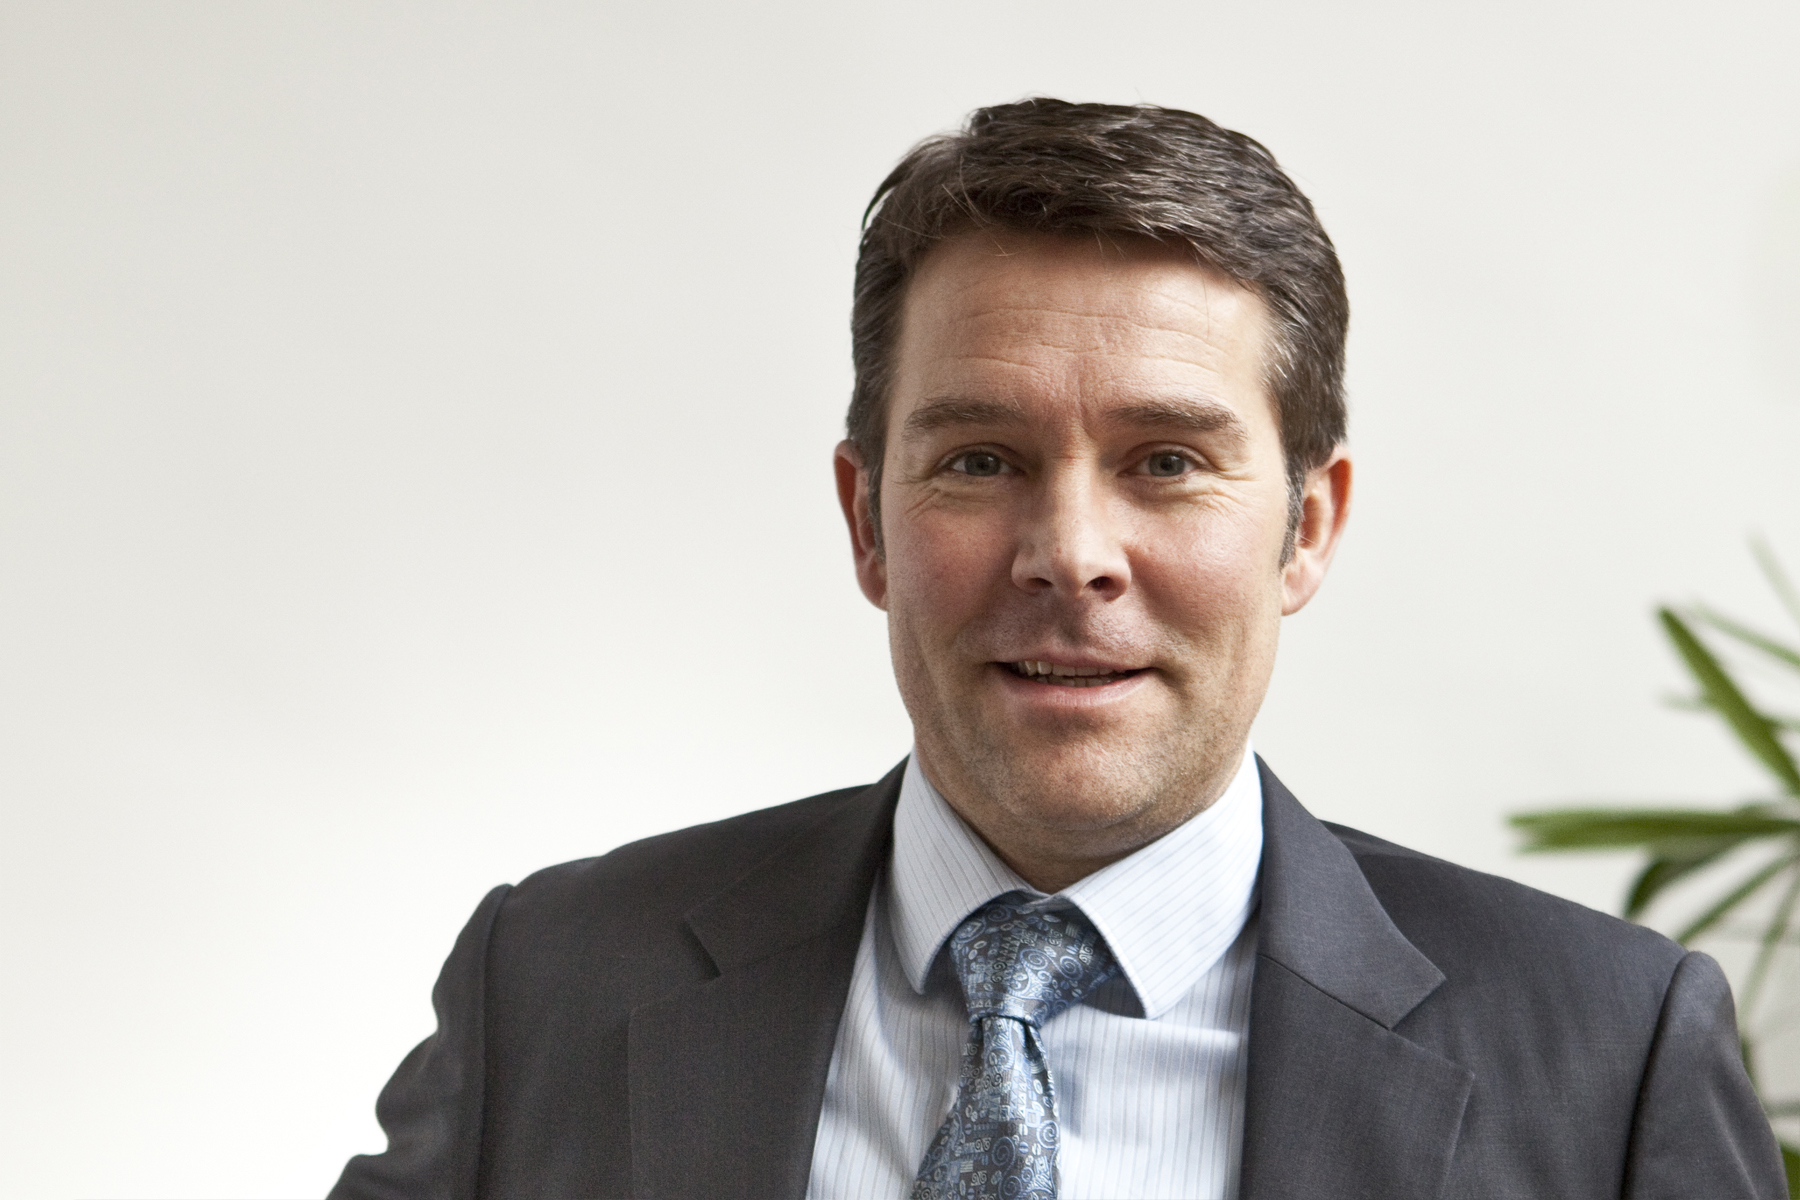 Q&A with Waldmann CEO Stefan Schnirch